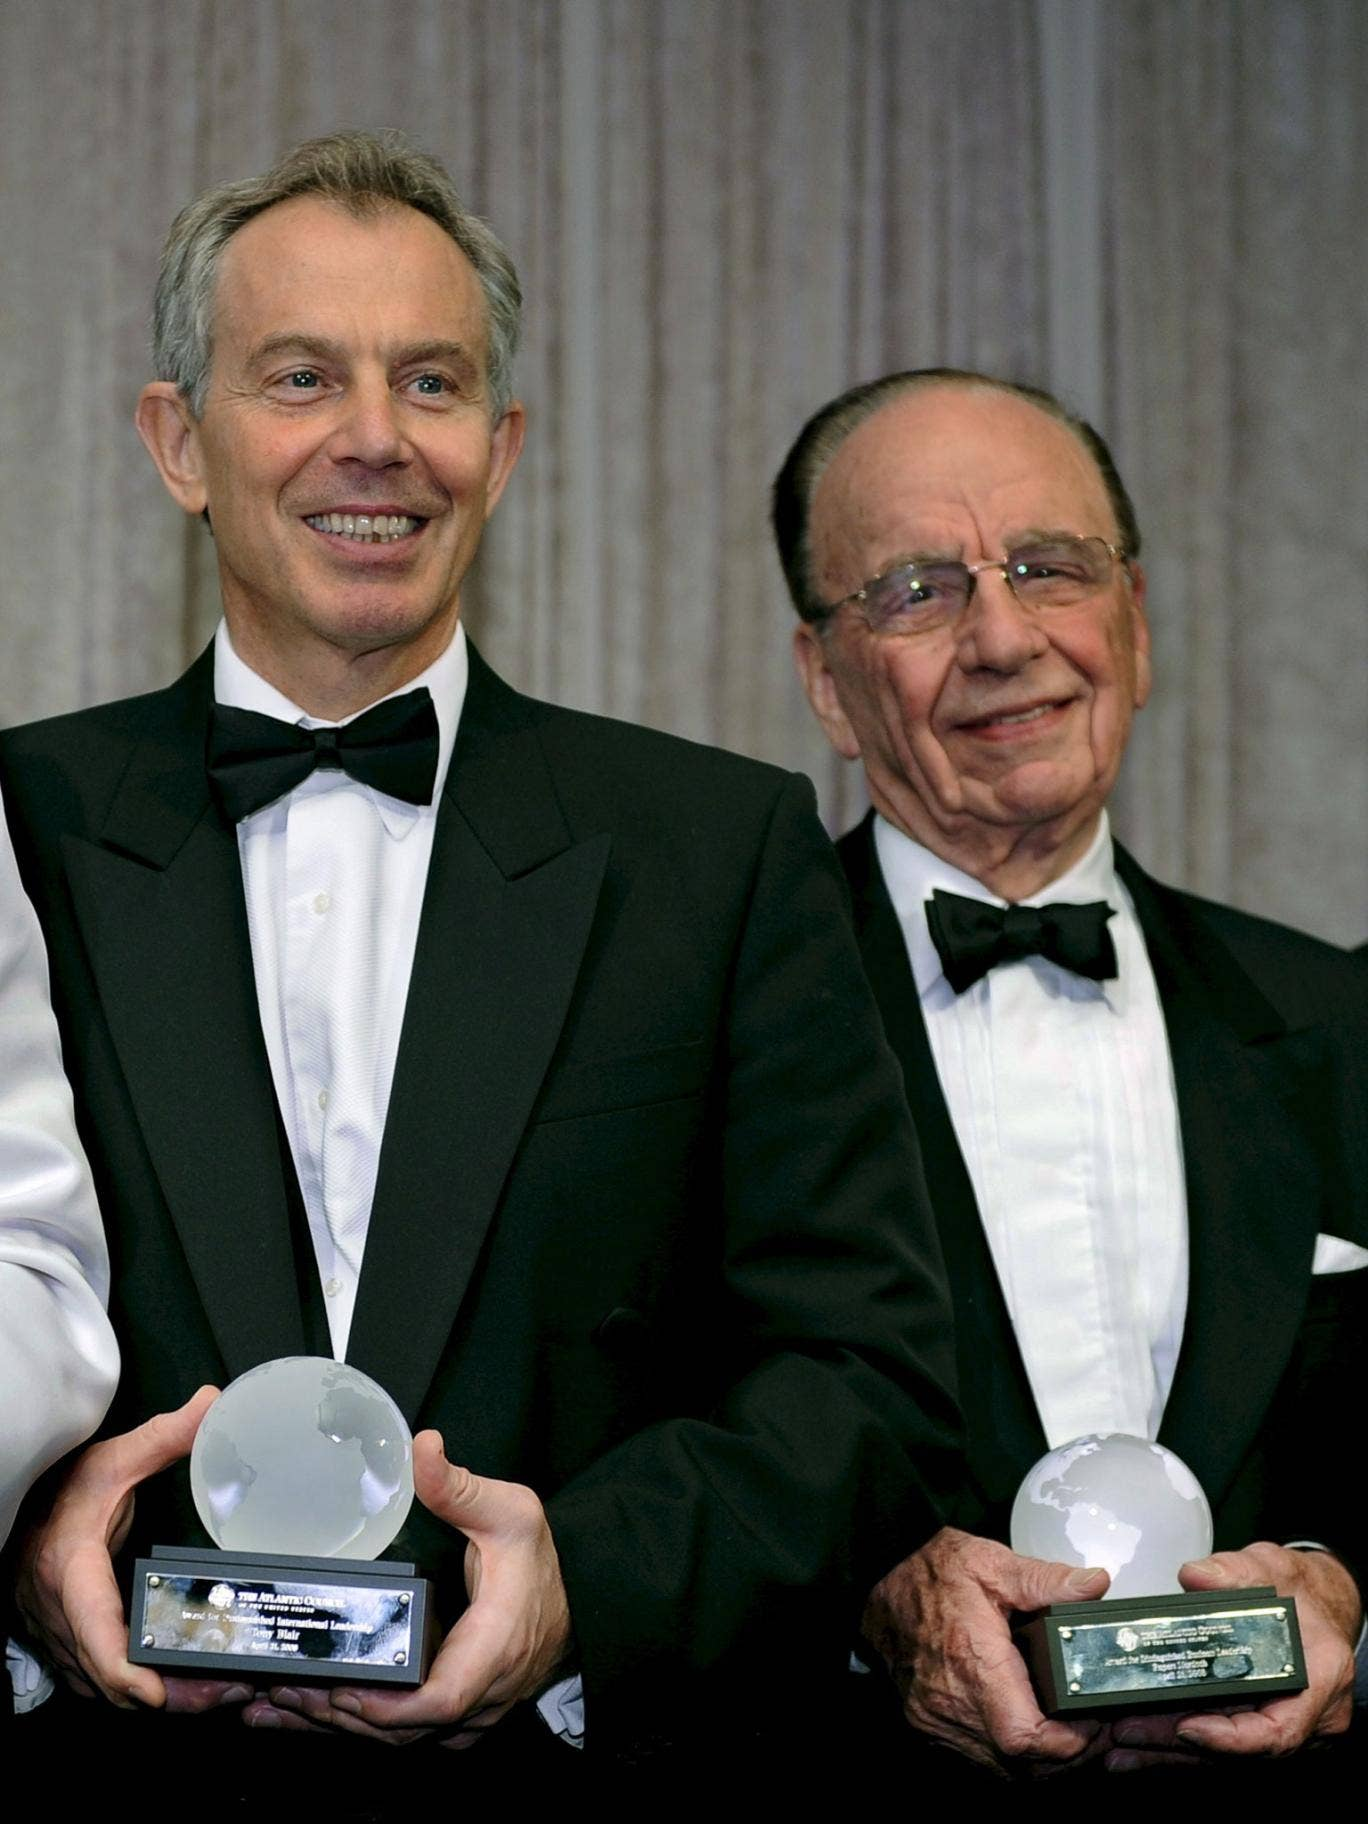 Tony Blair and Rupert Murdoch at an awards ceremony in 2008 – a remarkable friendship that started in 1995